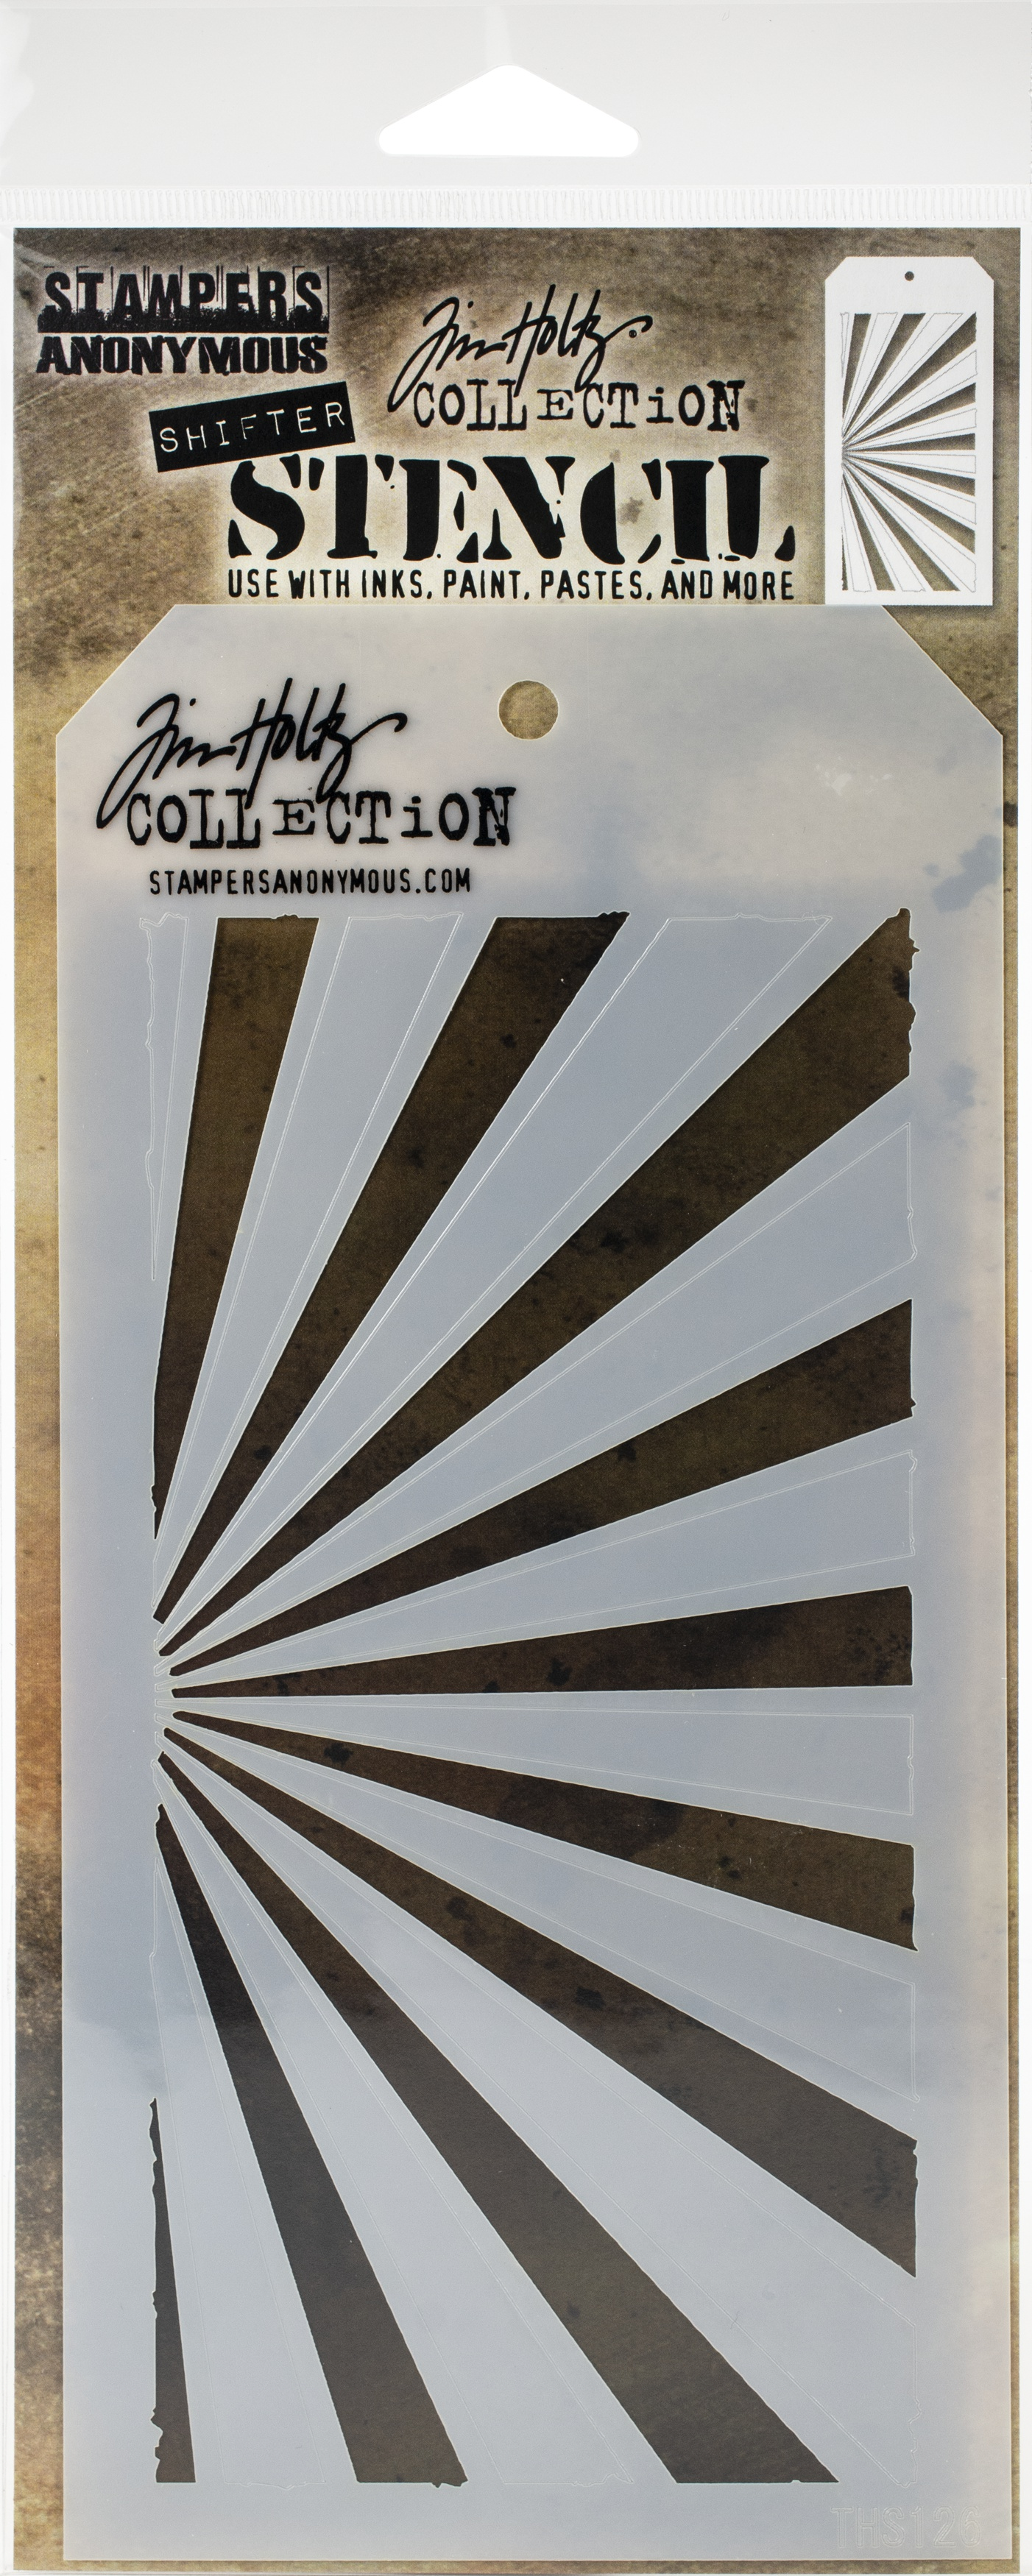 Tim Holtz Layered Stencil 4.125X8.5-Shifter Rays